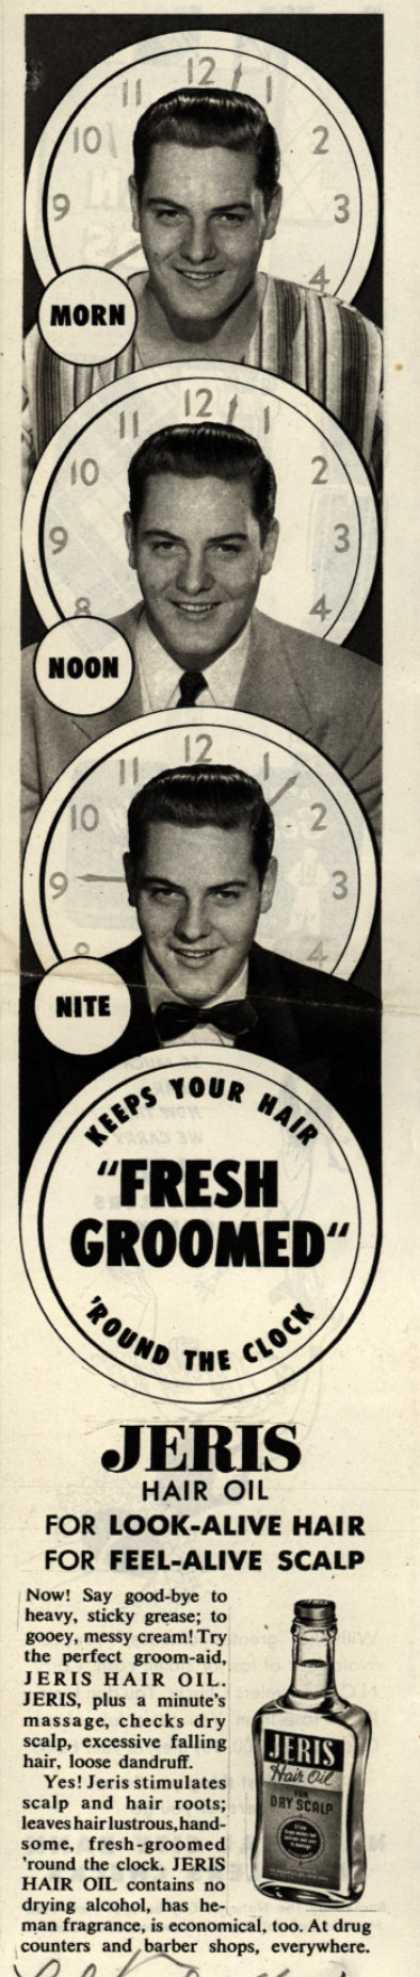 "Jeri's hair oil – Keeps Your Hair ""Fresh Groomed"" 'Round The Clock (1951)"